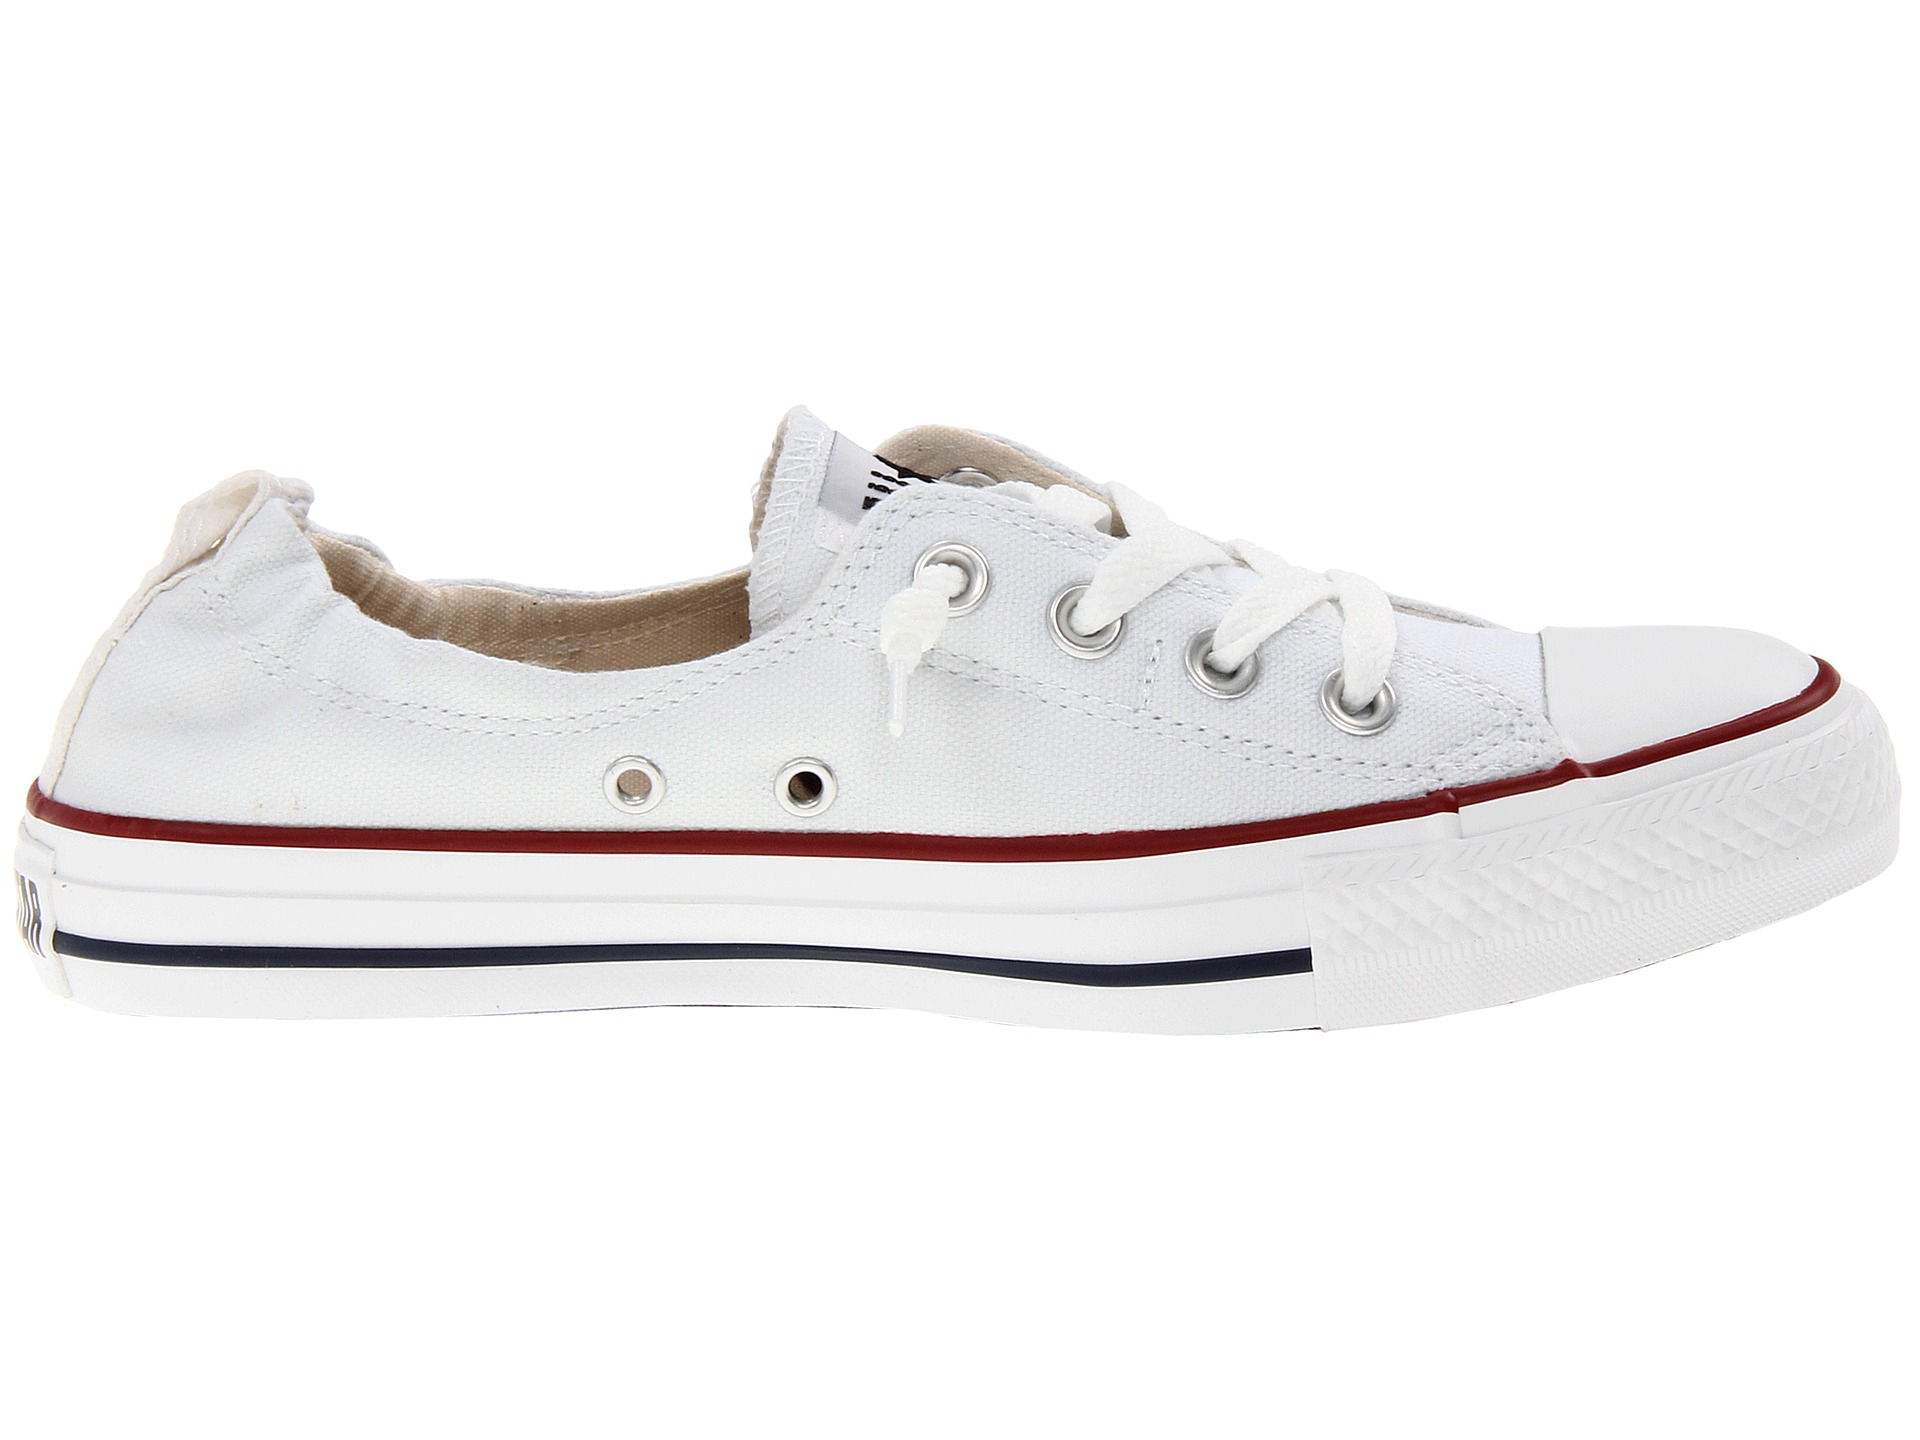 converse chuck taylor all star shoreline slip on ox in white. Black Bedroom Furniture Sets. Home Design Ideas